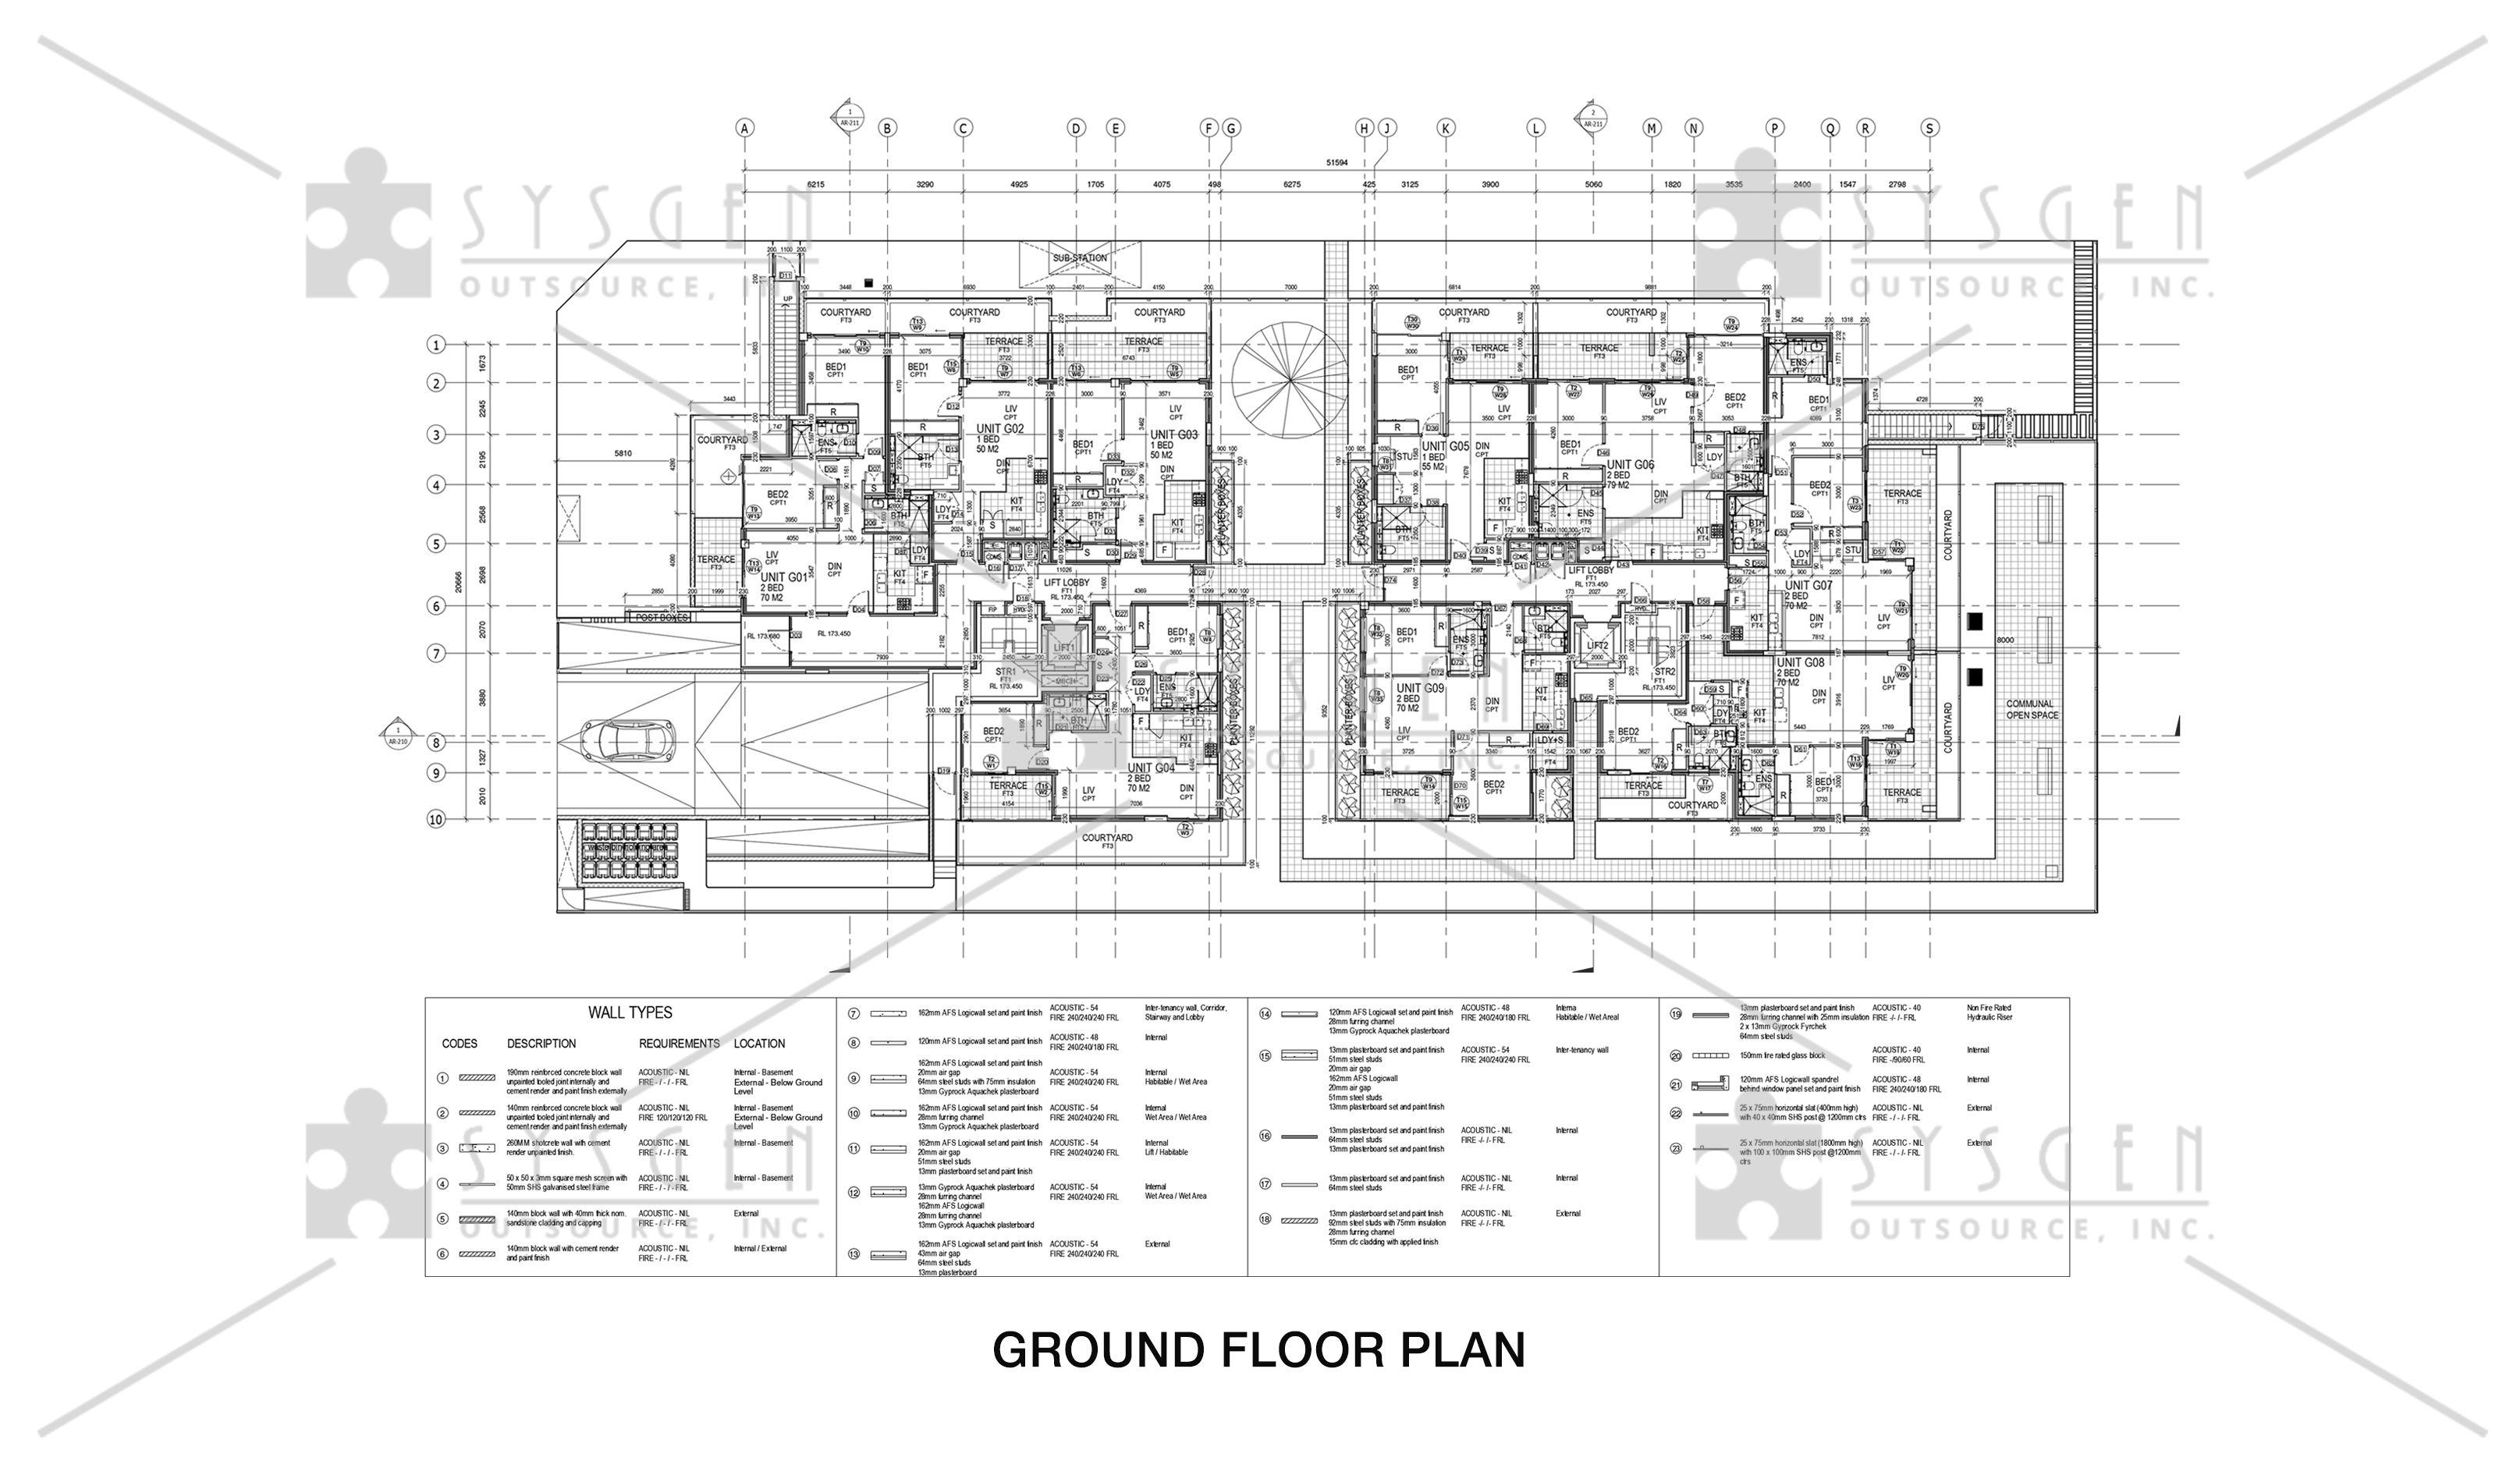 sysgen-outsource-cad-outsourcing-services-cad-conversion-revit-4-storey-residential4